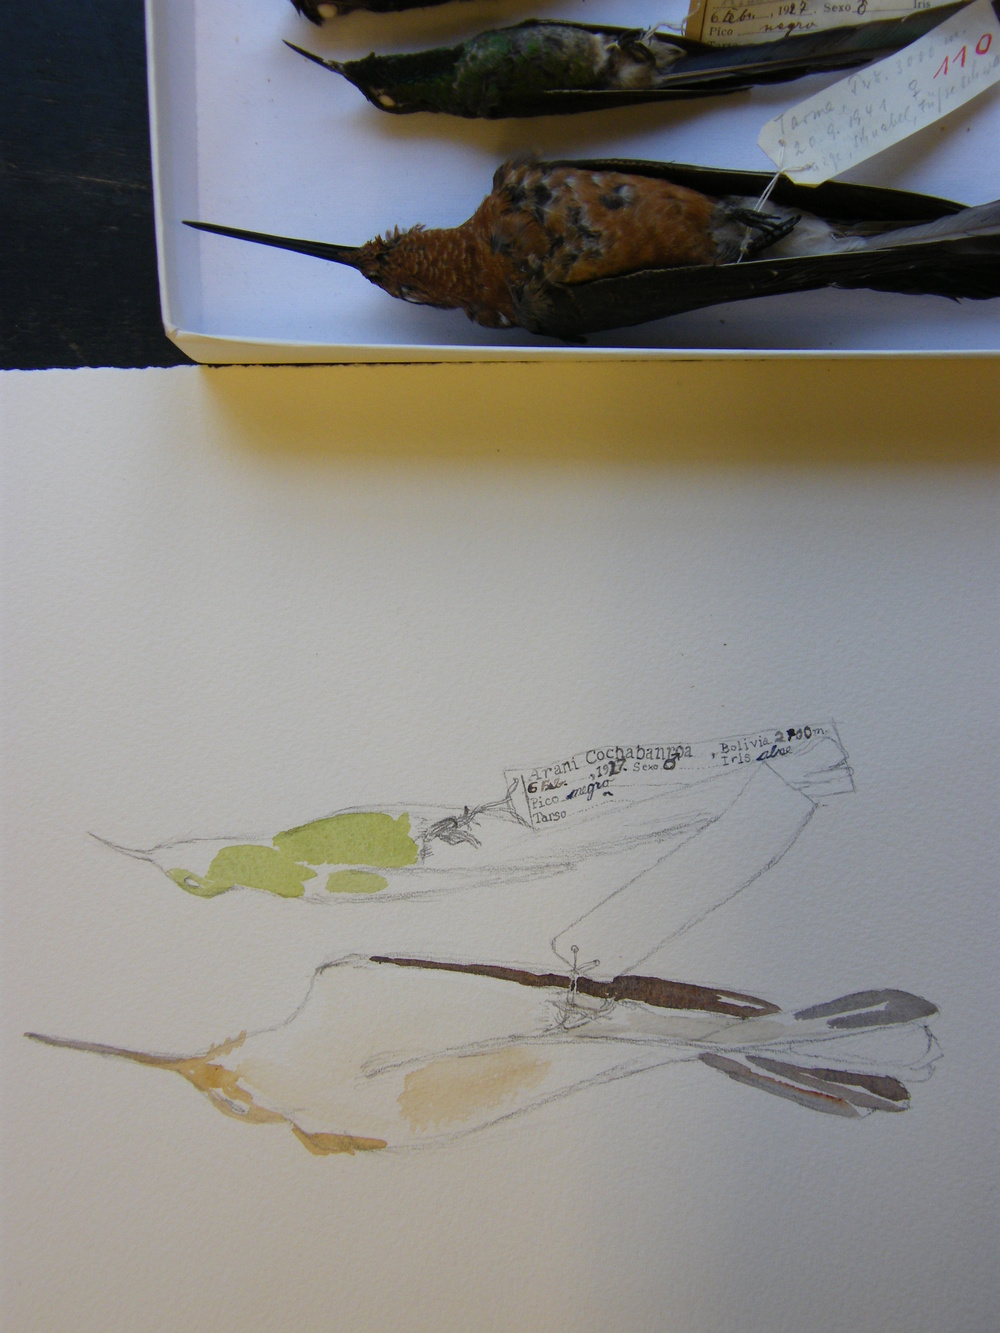 Hummingbird sketch and specimens